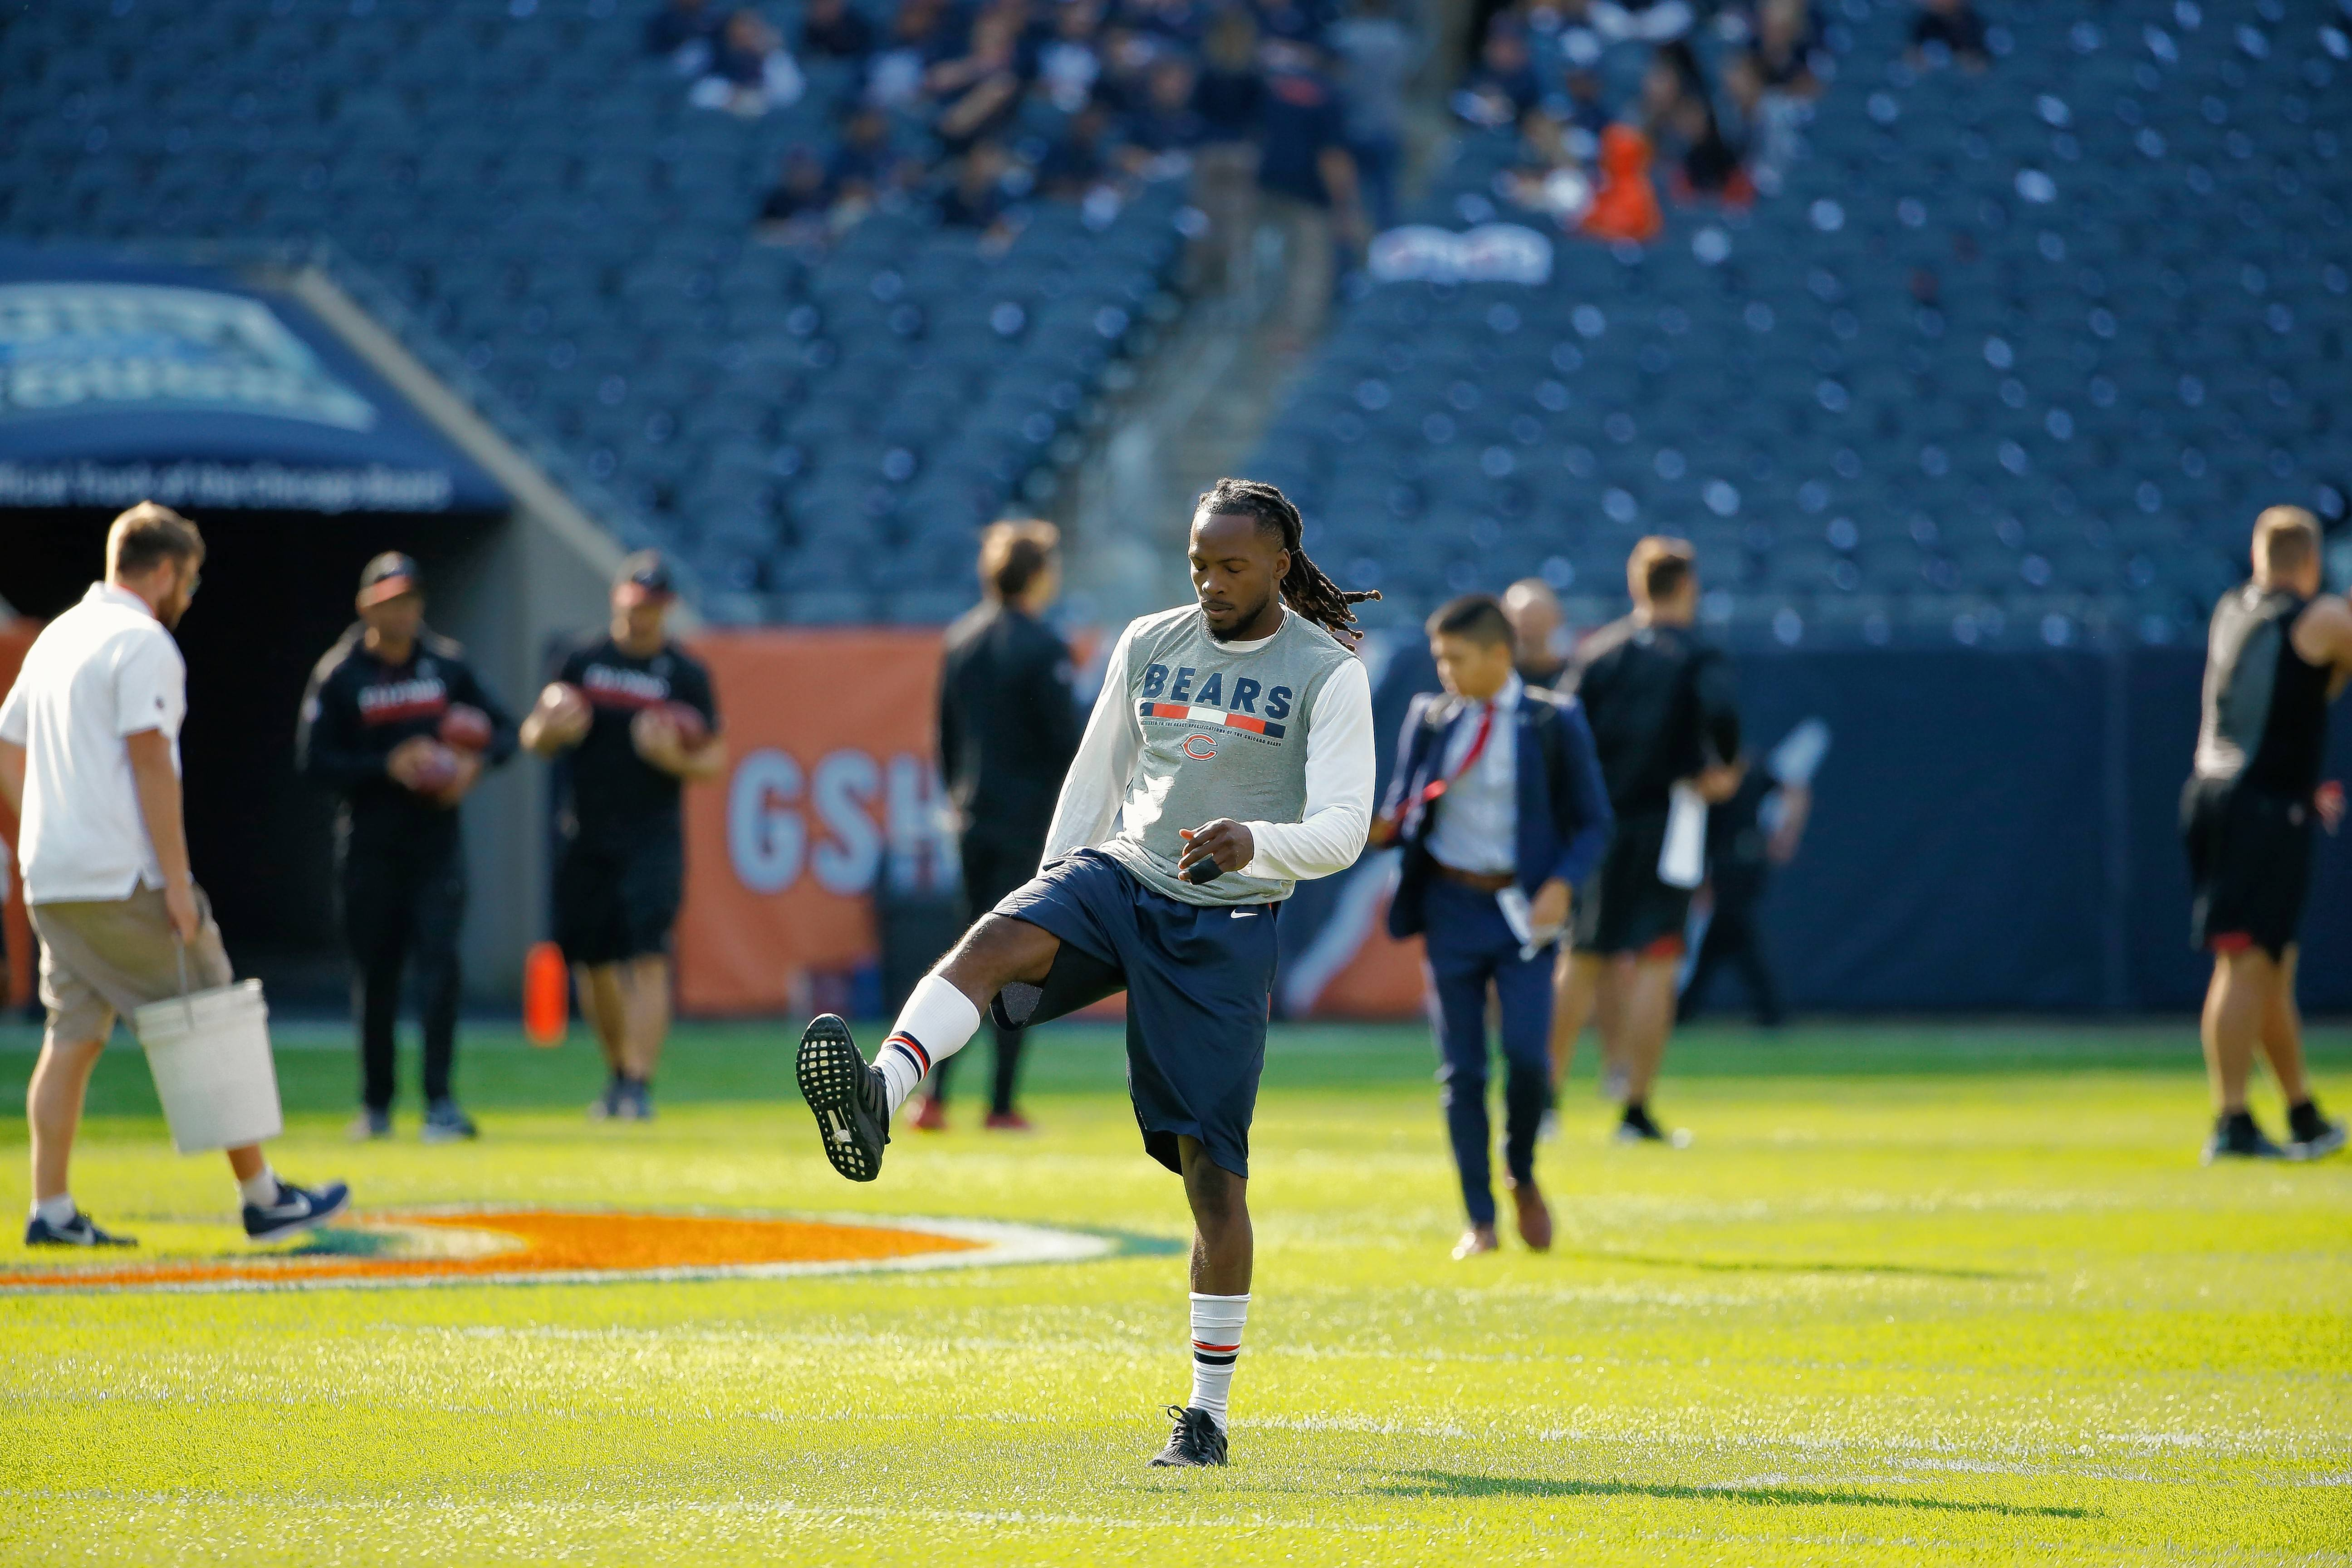 Chicago Bears wide receiver Markus Wheaton warms up before an NFL football game against the Atlanta Falcons, Sunday, Sept. 10, 2017, in Chicago. (AP Photo/Nam Y. Huh)